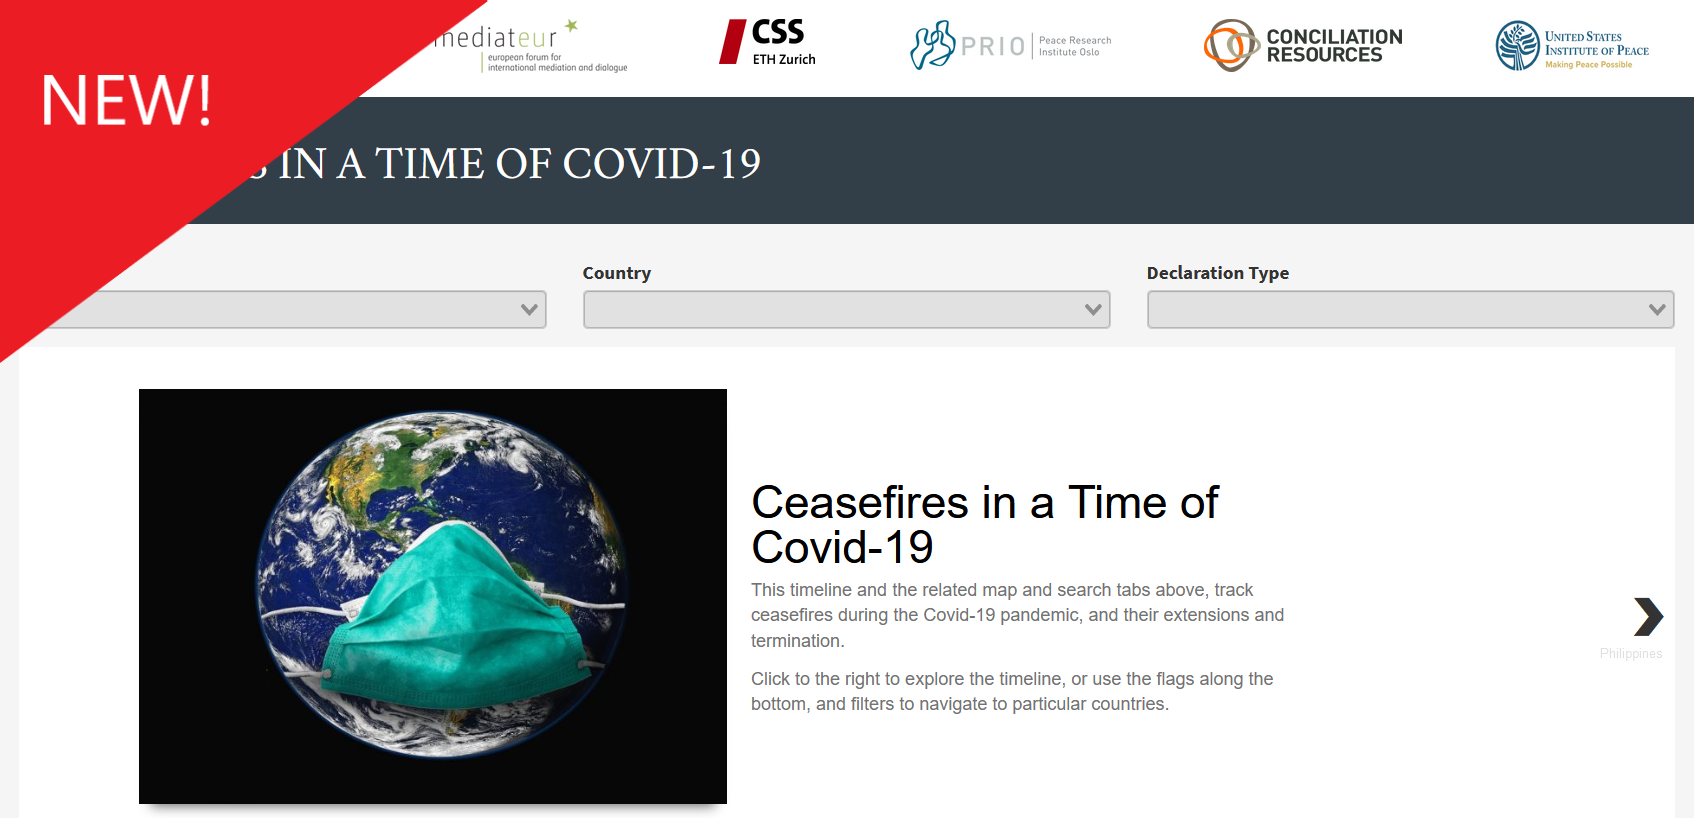 Ceasefires in a Time of Covid-19